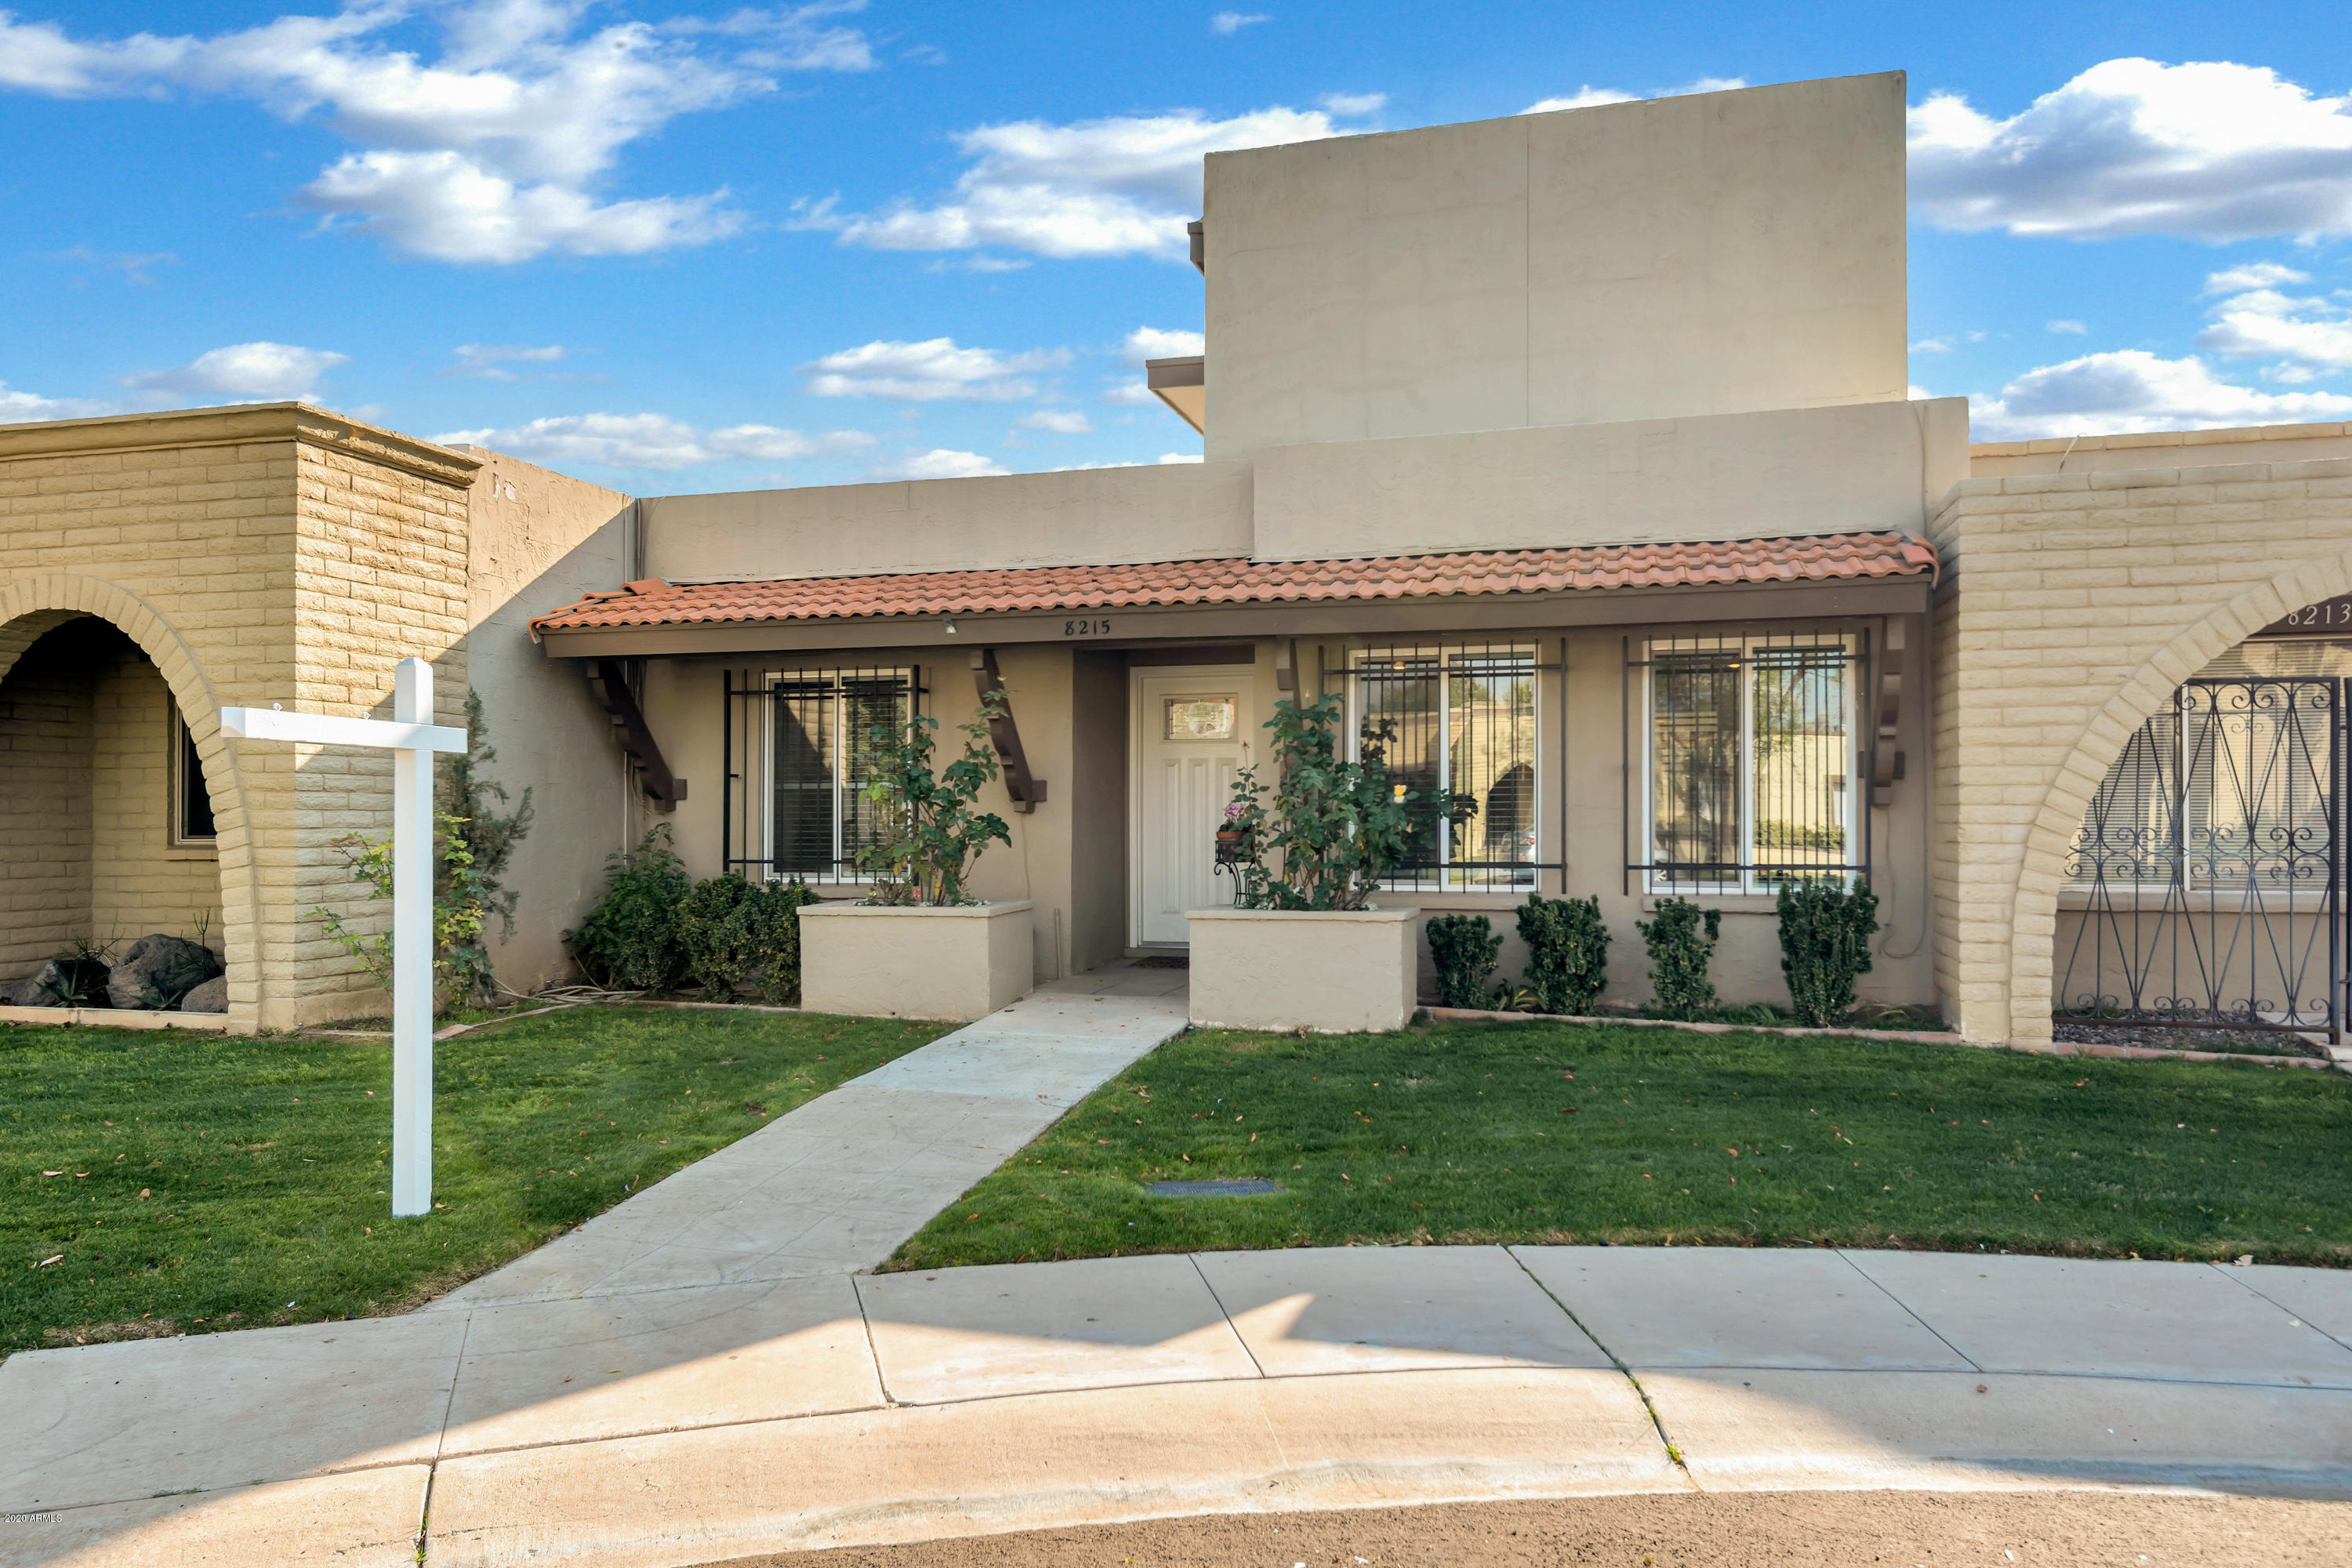 Photo of 8215 E KEIM Drive, Scottsdale, AZ 85250